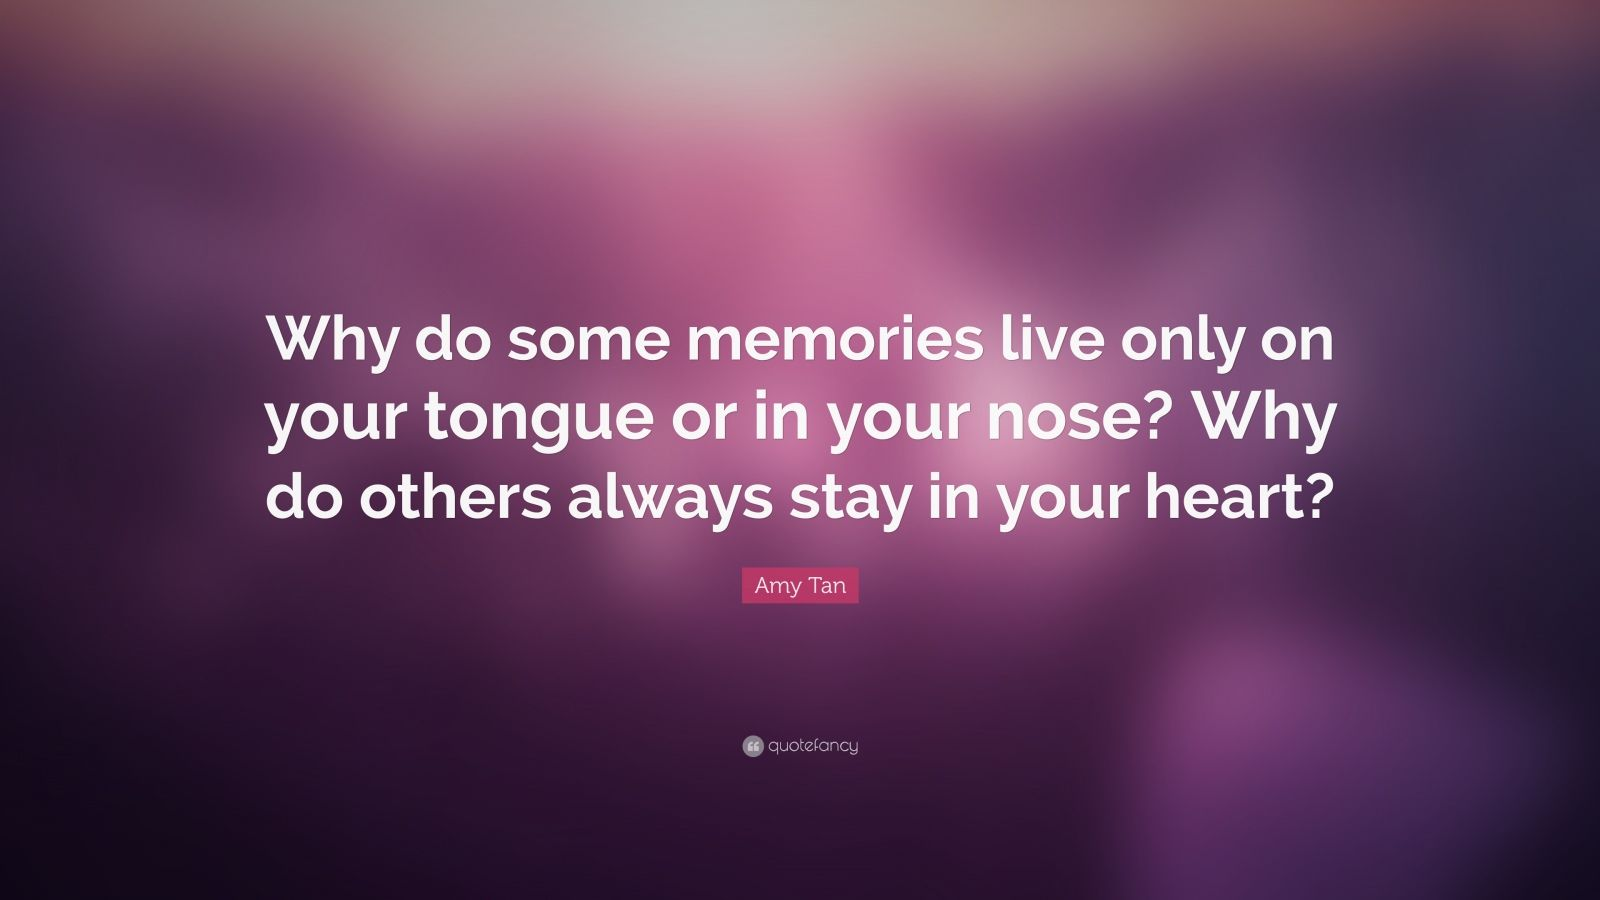 tan mother tongue mother tongue centsynopsis amy tan s mother  amy tan quotes quotefancy amy tan quote why do some memories live only on your tongue